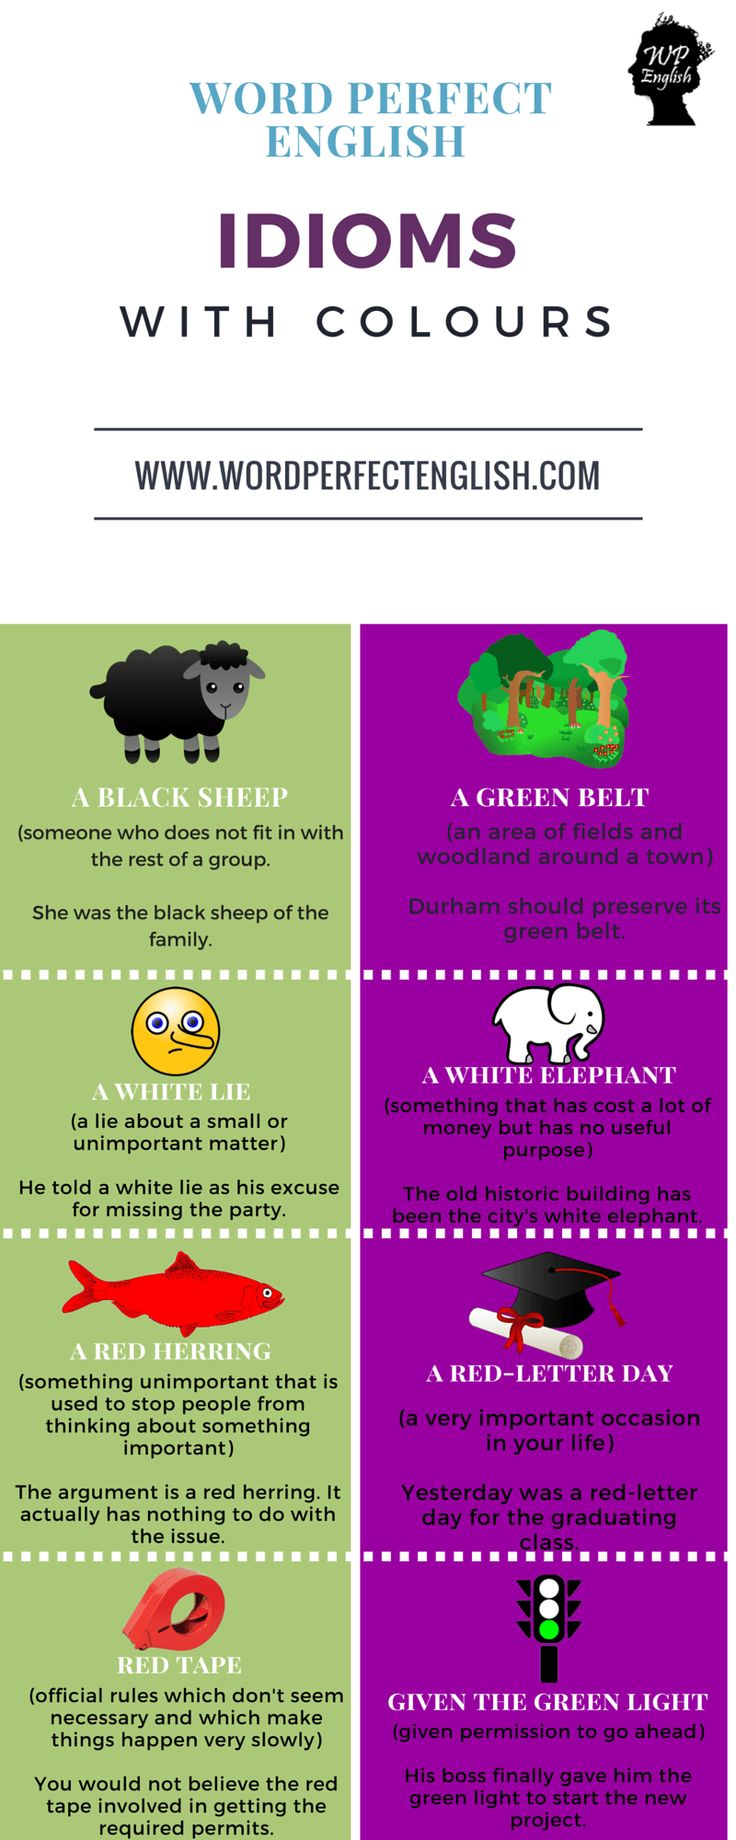 Idioms with Colours 1/2